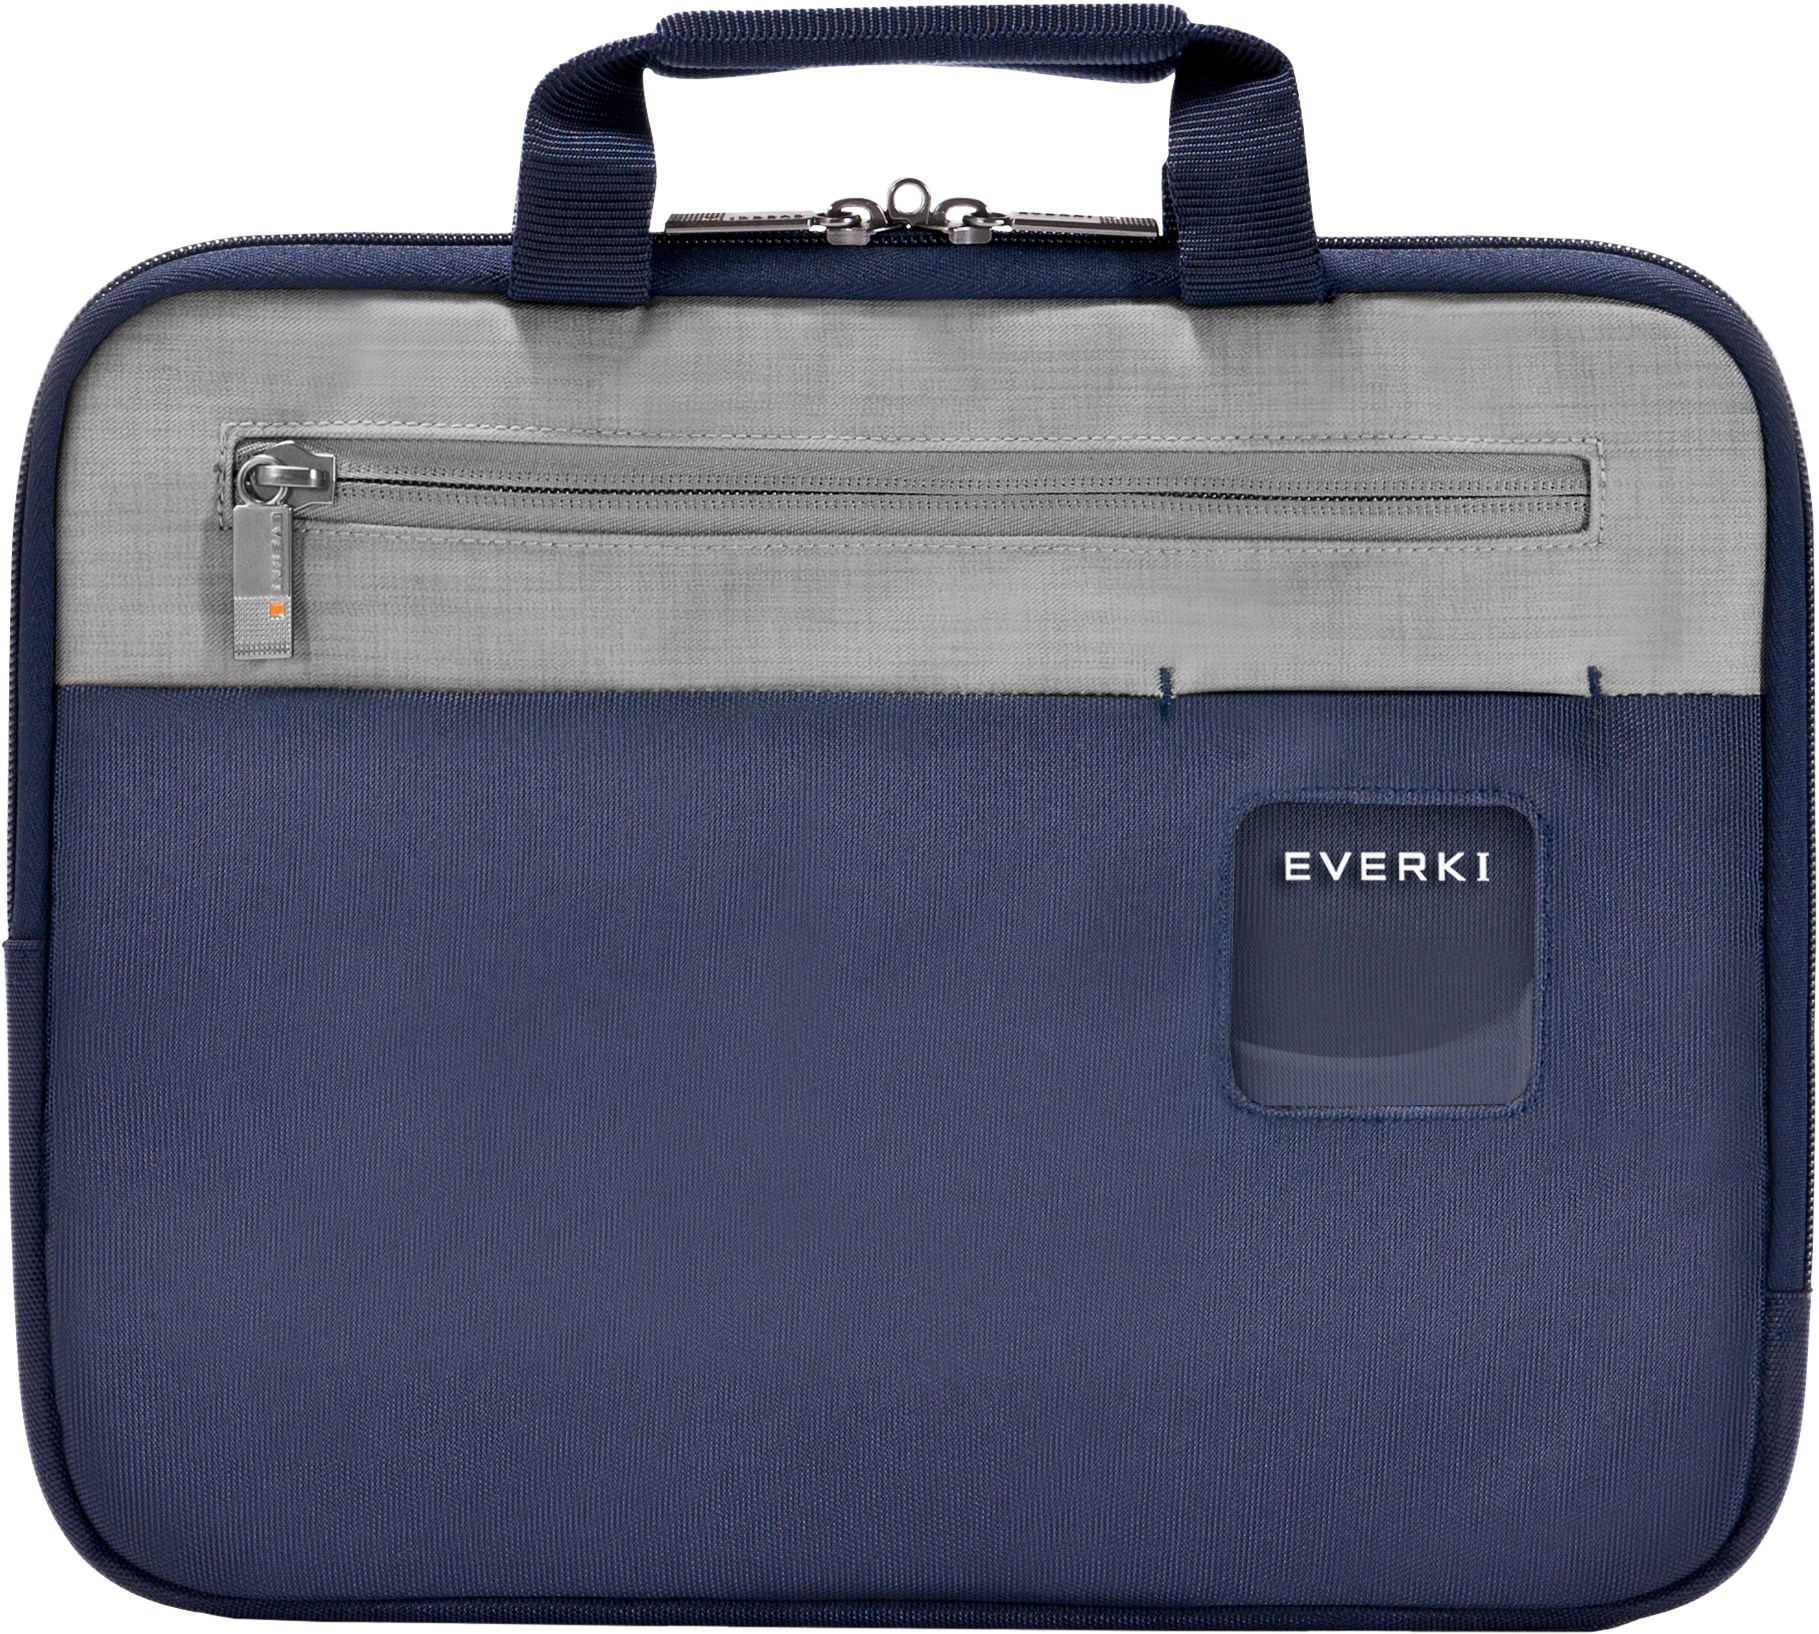 "Torba do laptopa EVERKI ContemPRO Sleeve 11,6"" granatowa"